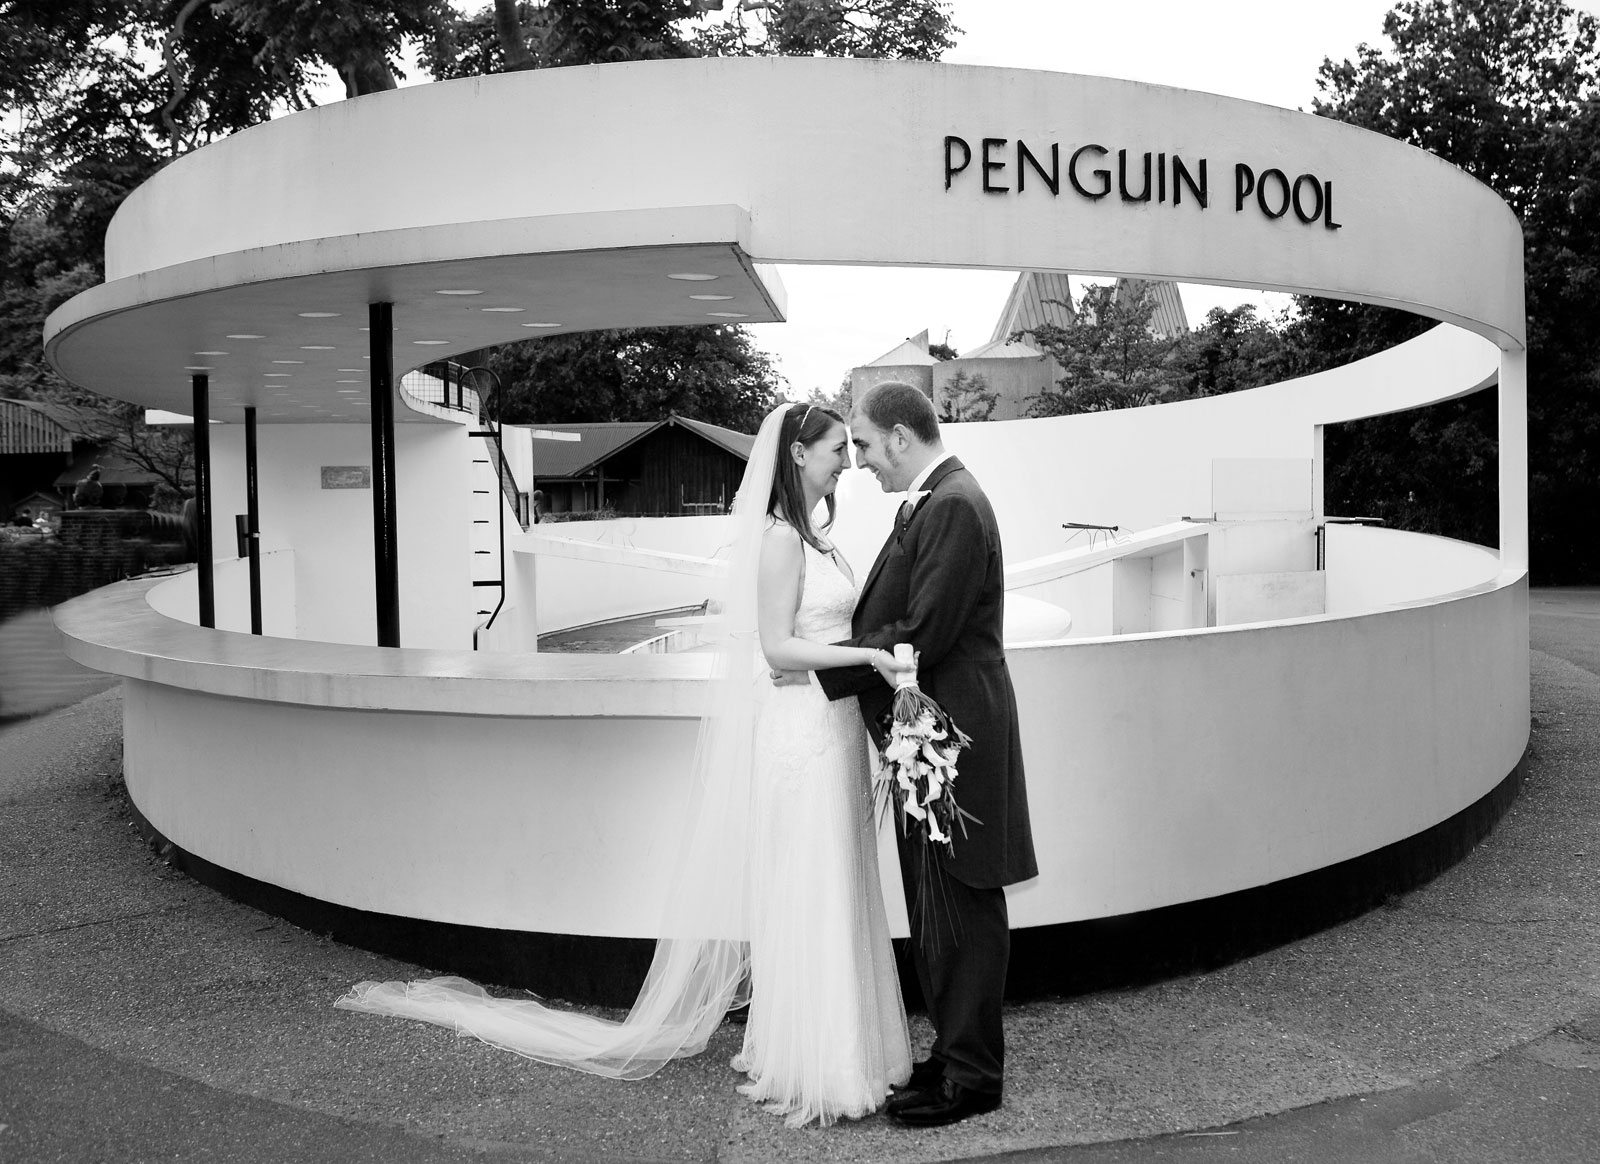 Penguin pool zoo weddings London